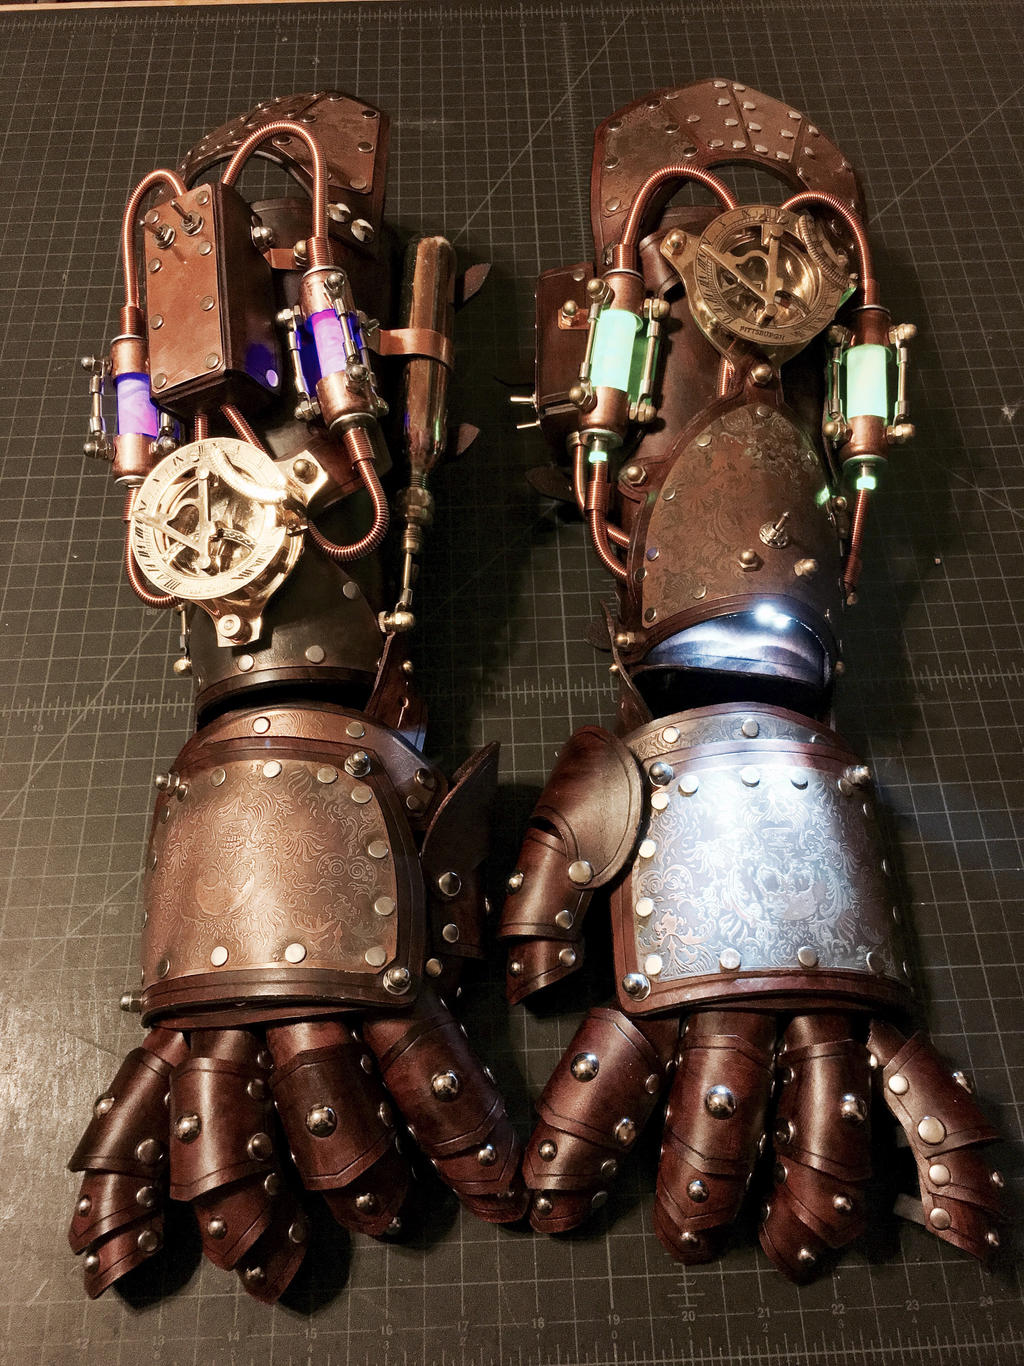 My Personal Gauntlets